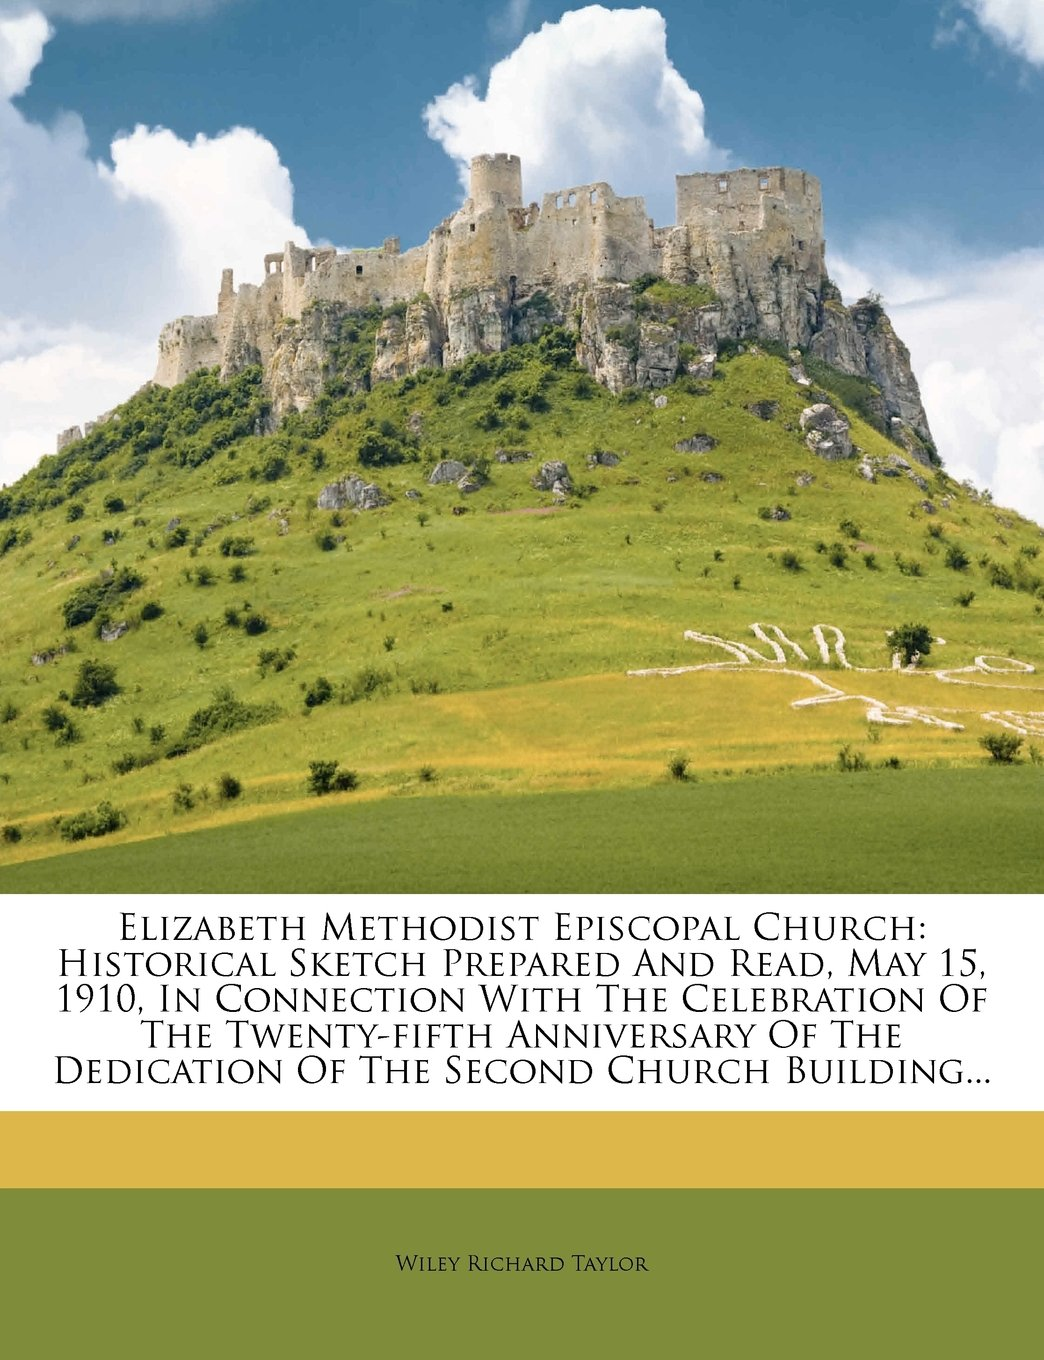 Download Elizabeth Methodist Episcopal Church: Historical Sketch Prepared and Read, May 15, 1910, in Connection with the Celebration of the Twenty-Fifth Annive pdf epub